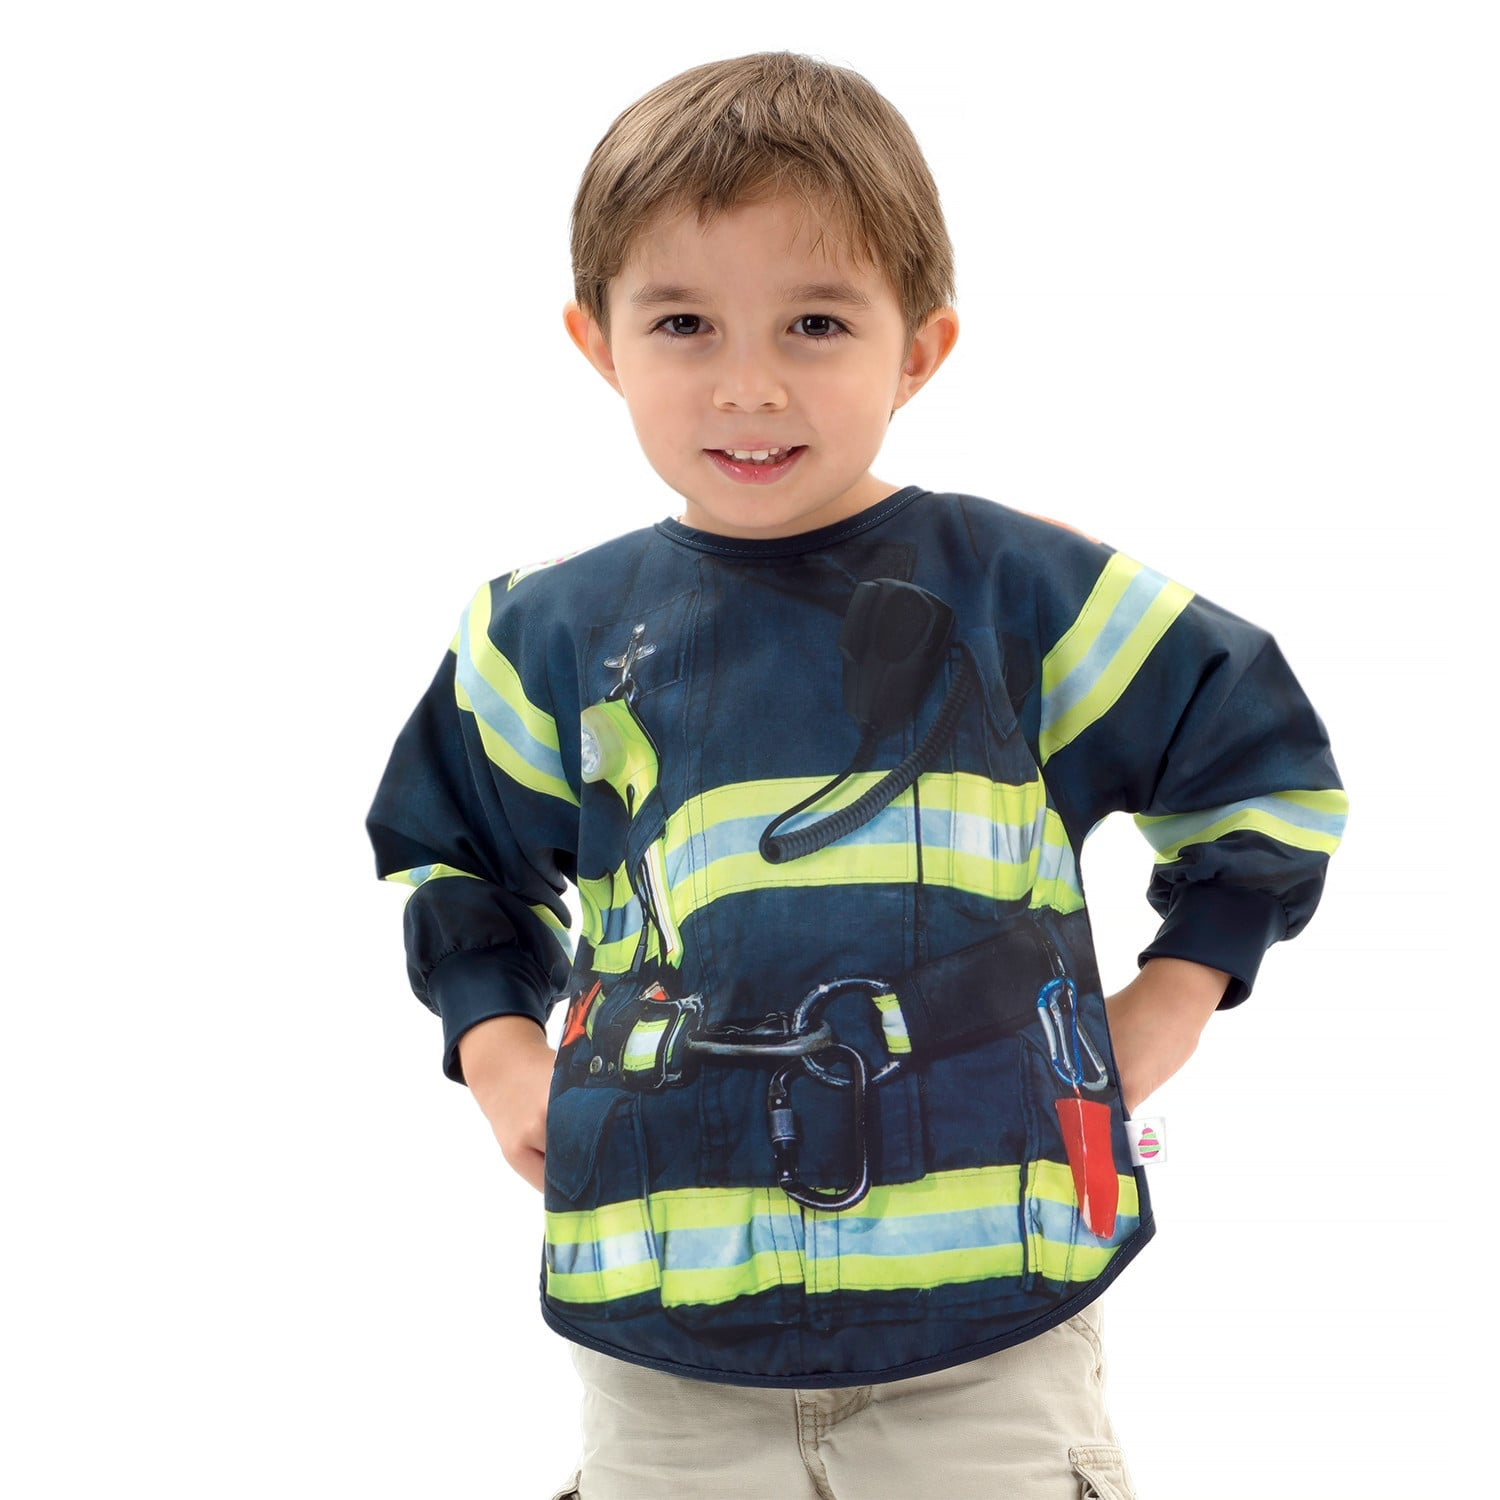 Firefighter - Suitables Role Play Bib - Mixed Pears  - 1